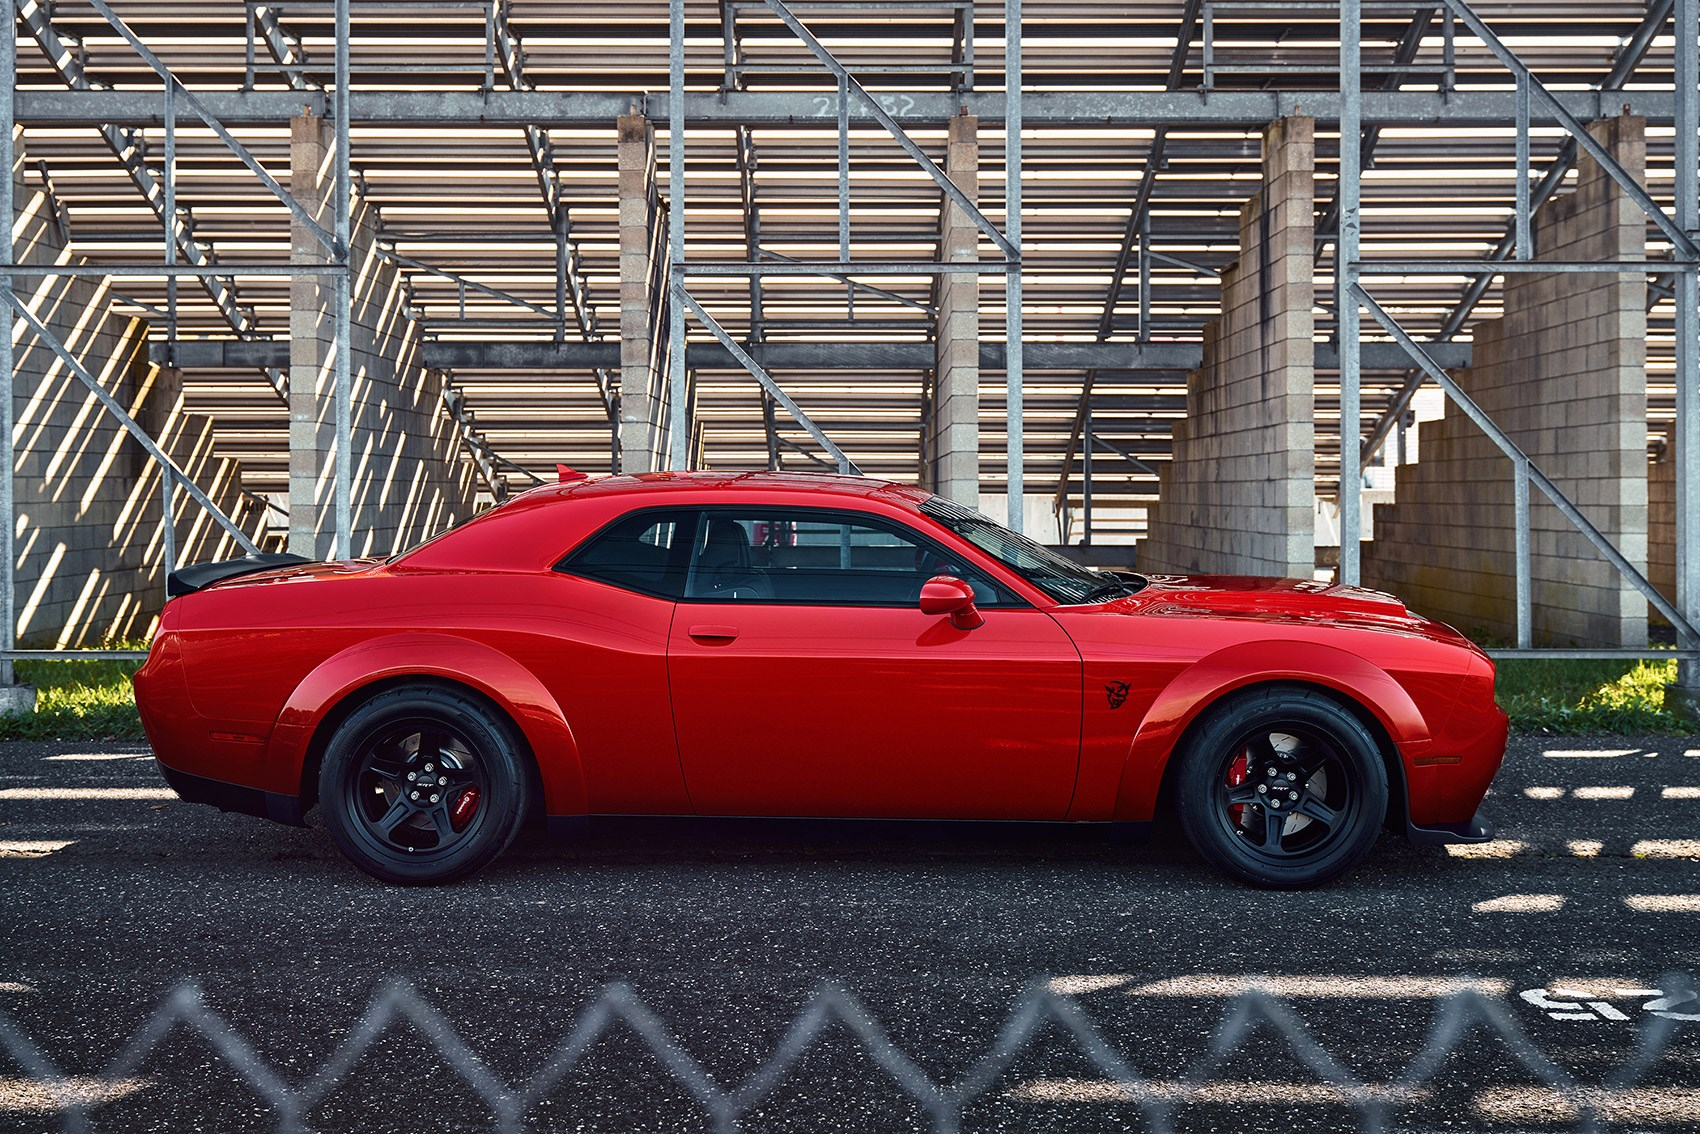 2018 dodge challenger srt demon revealed in pictures by car magazine. Black Bedroom Furniture Sets. Home Design Ideas